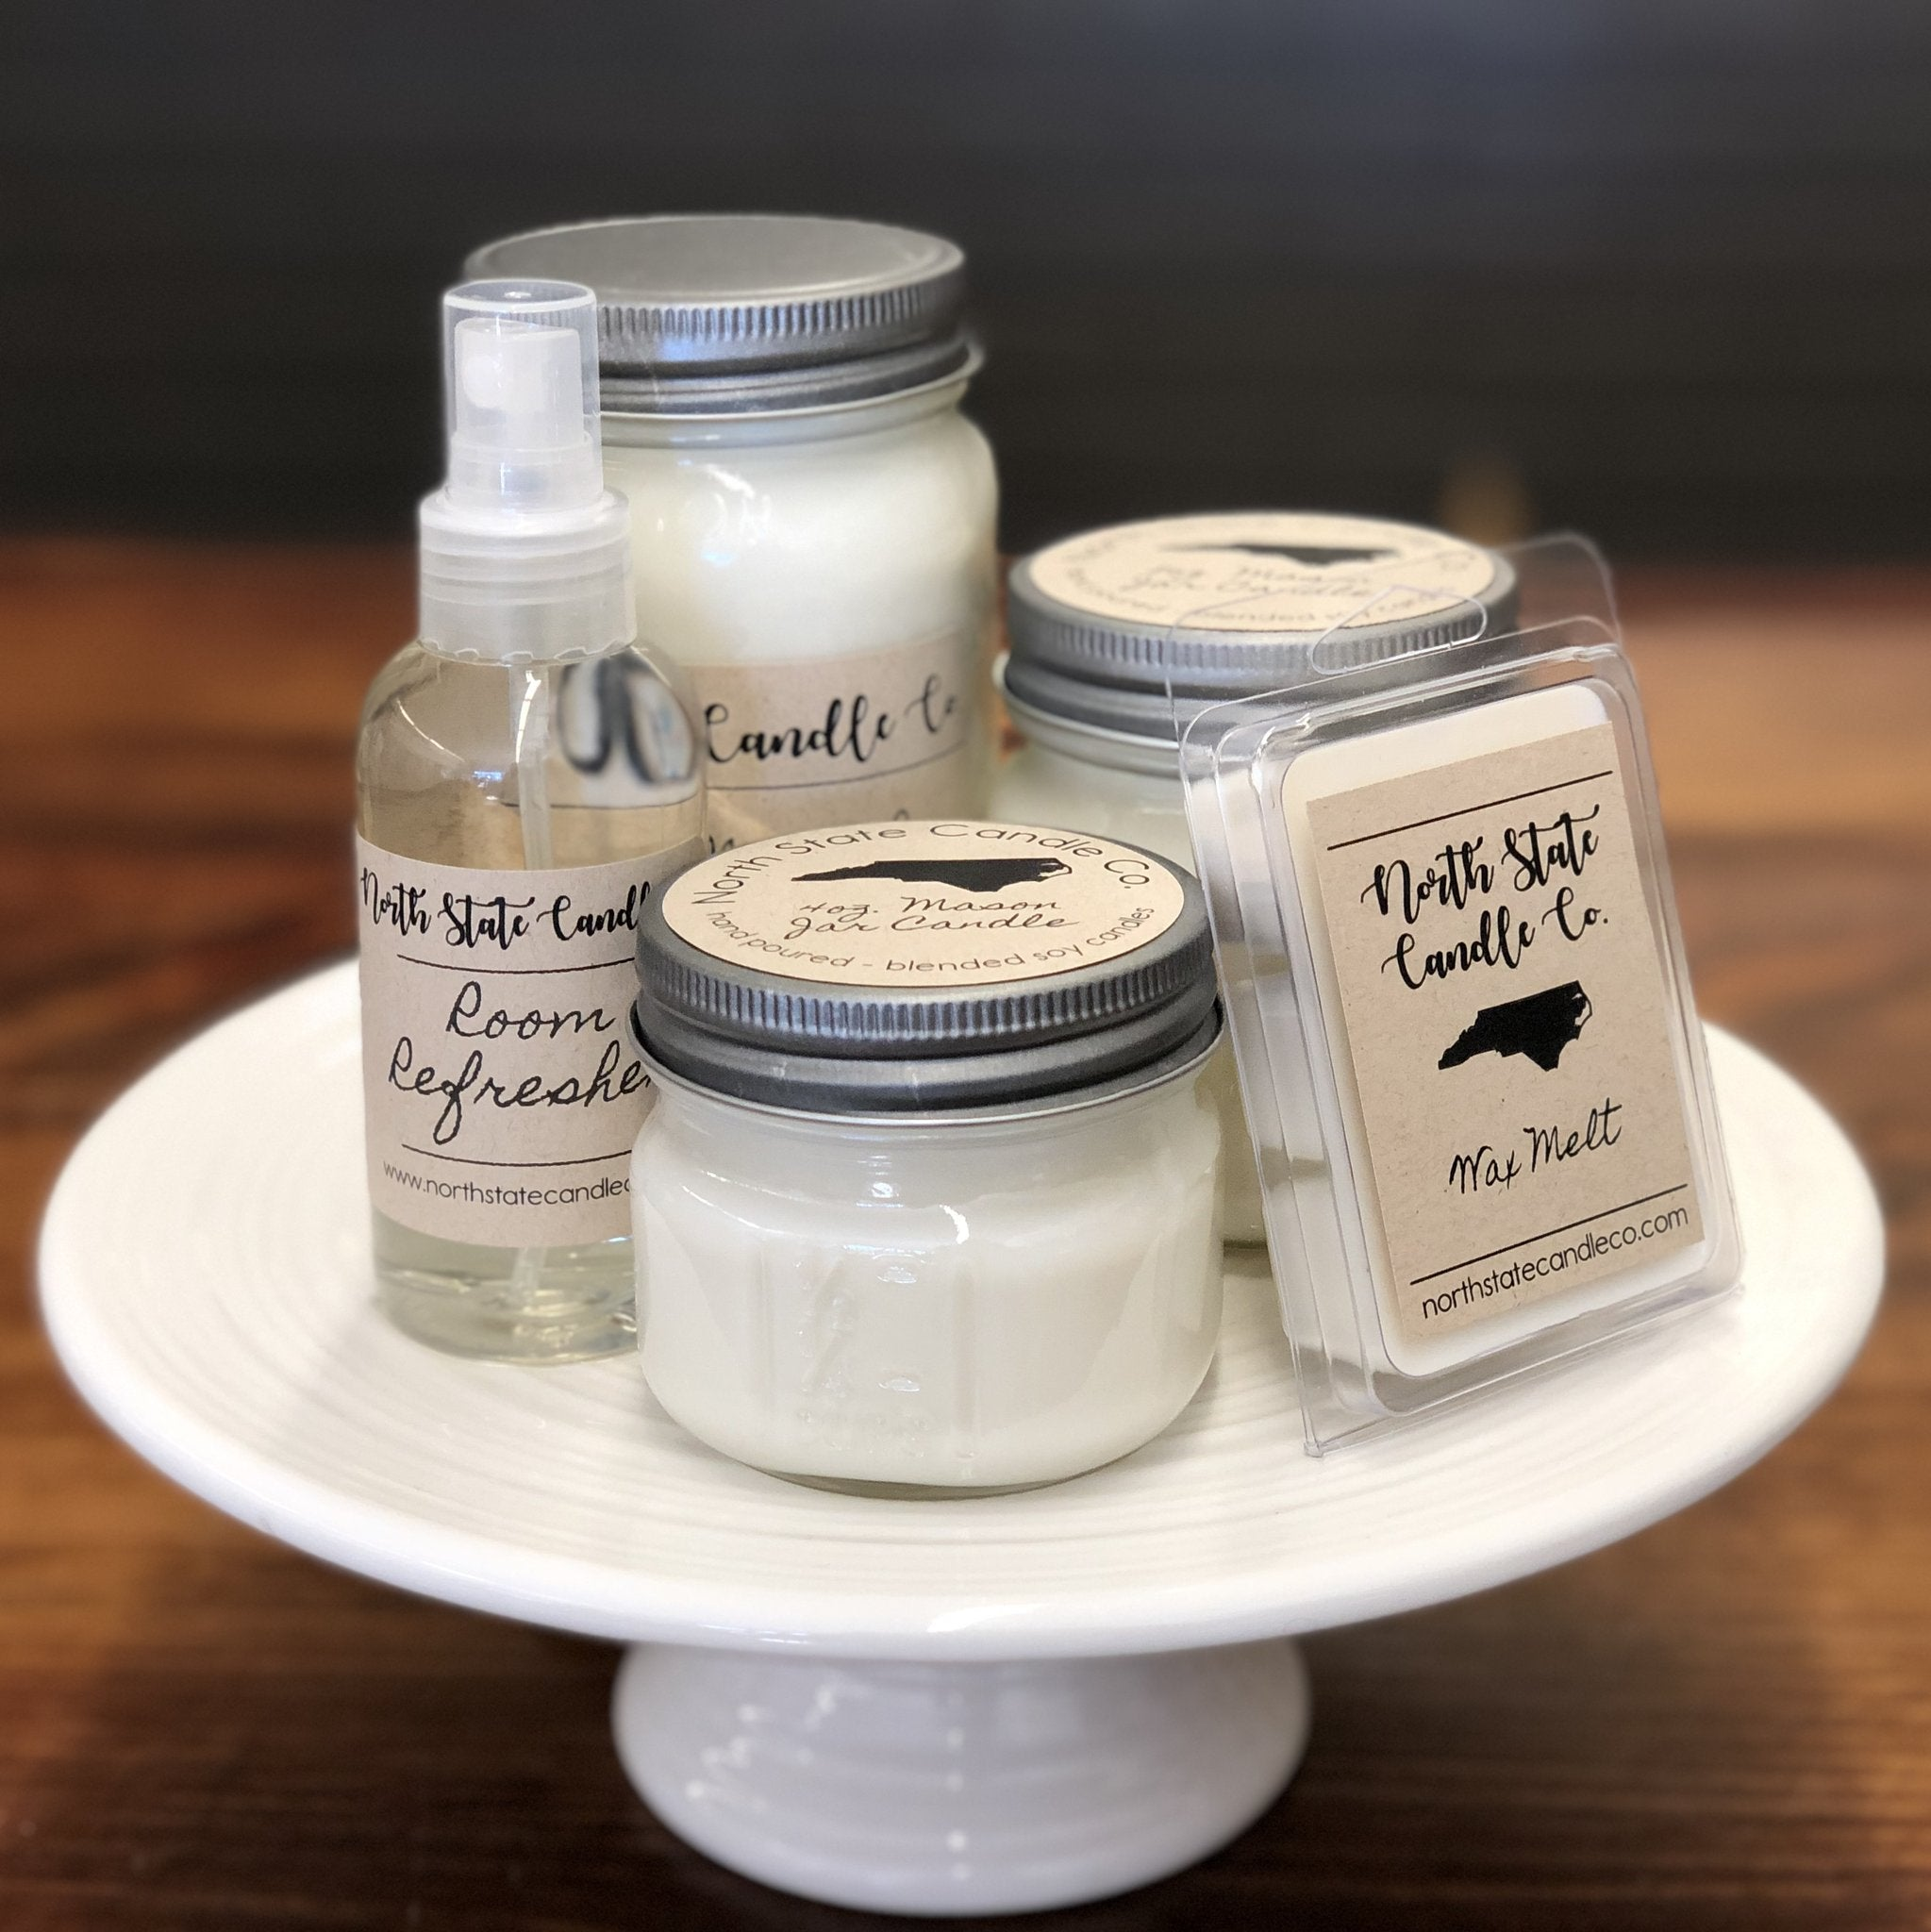 NORTH STATE CANDLE CO - FARMERS MARKET WAX MELTS